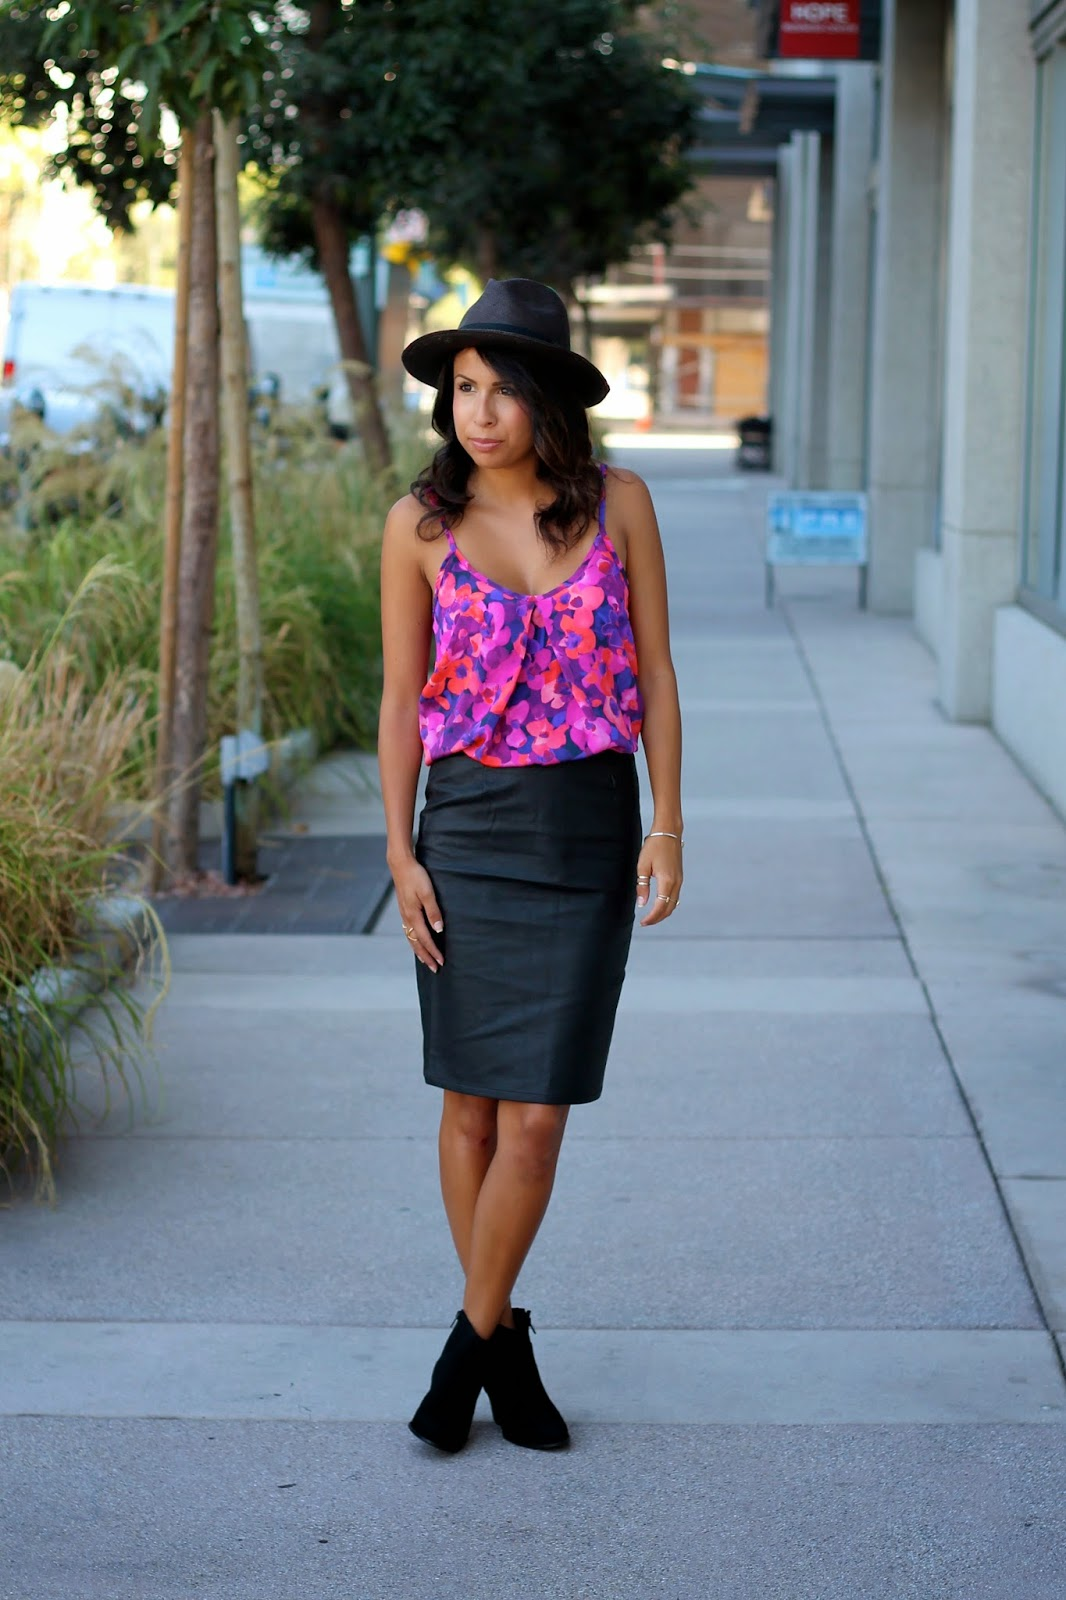 fall trends, how to dress for fall, leather skirt, booties, sole society, what is fashion